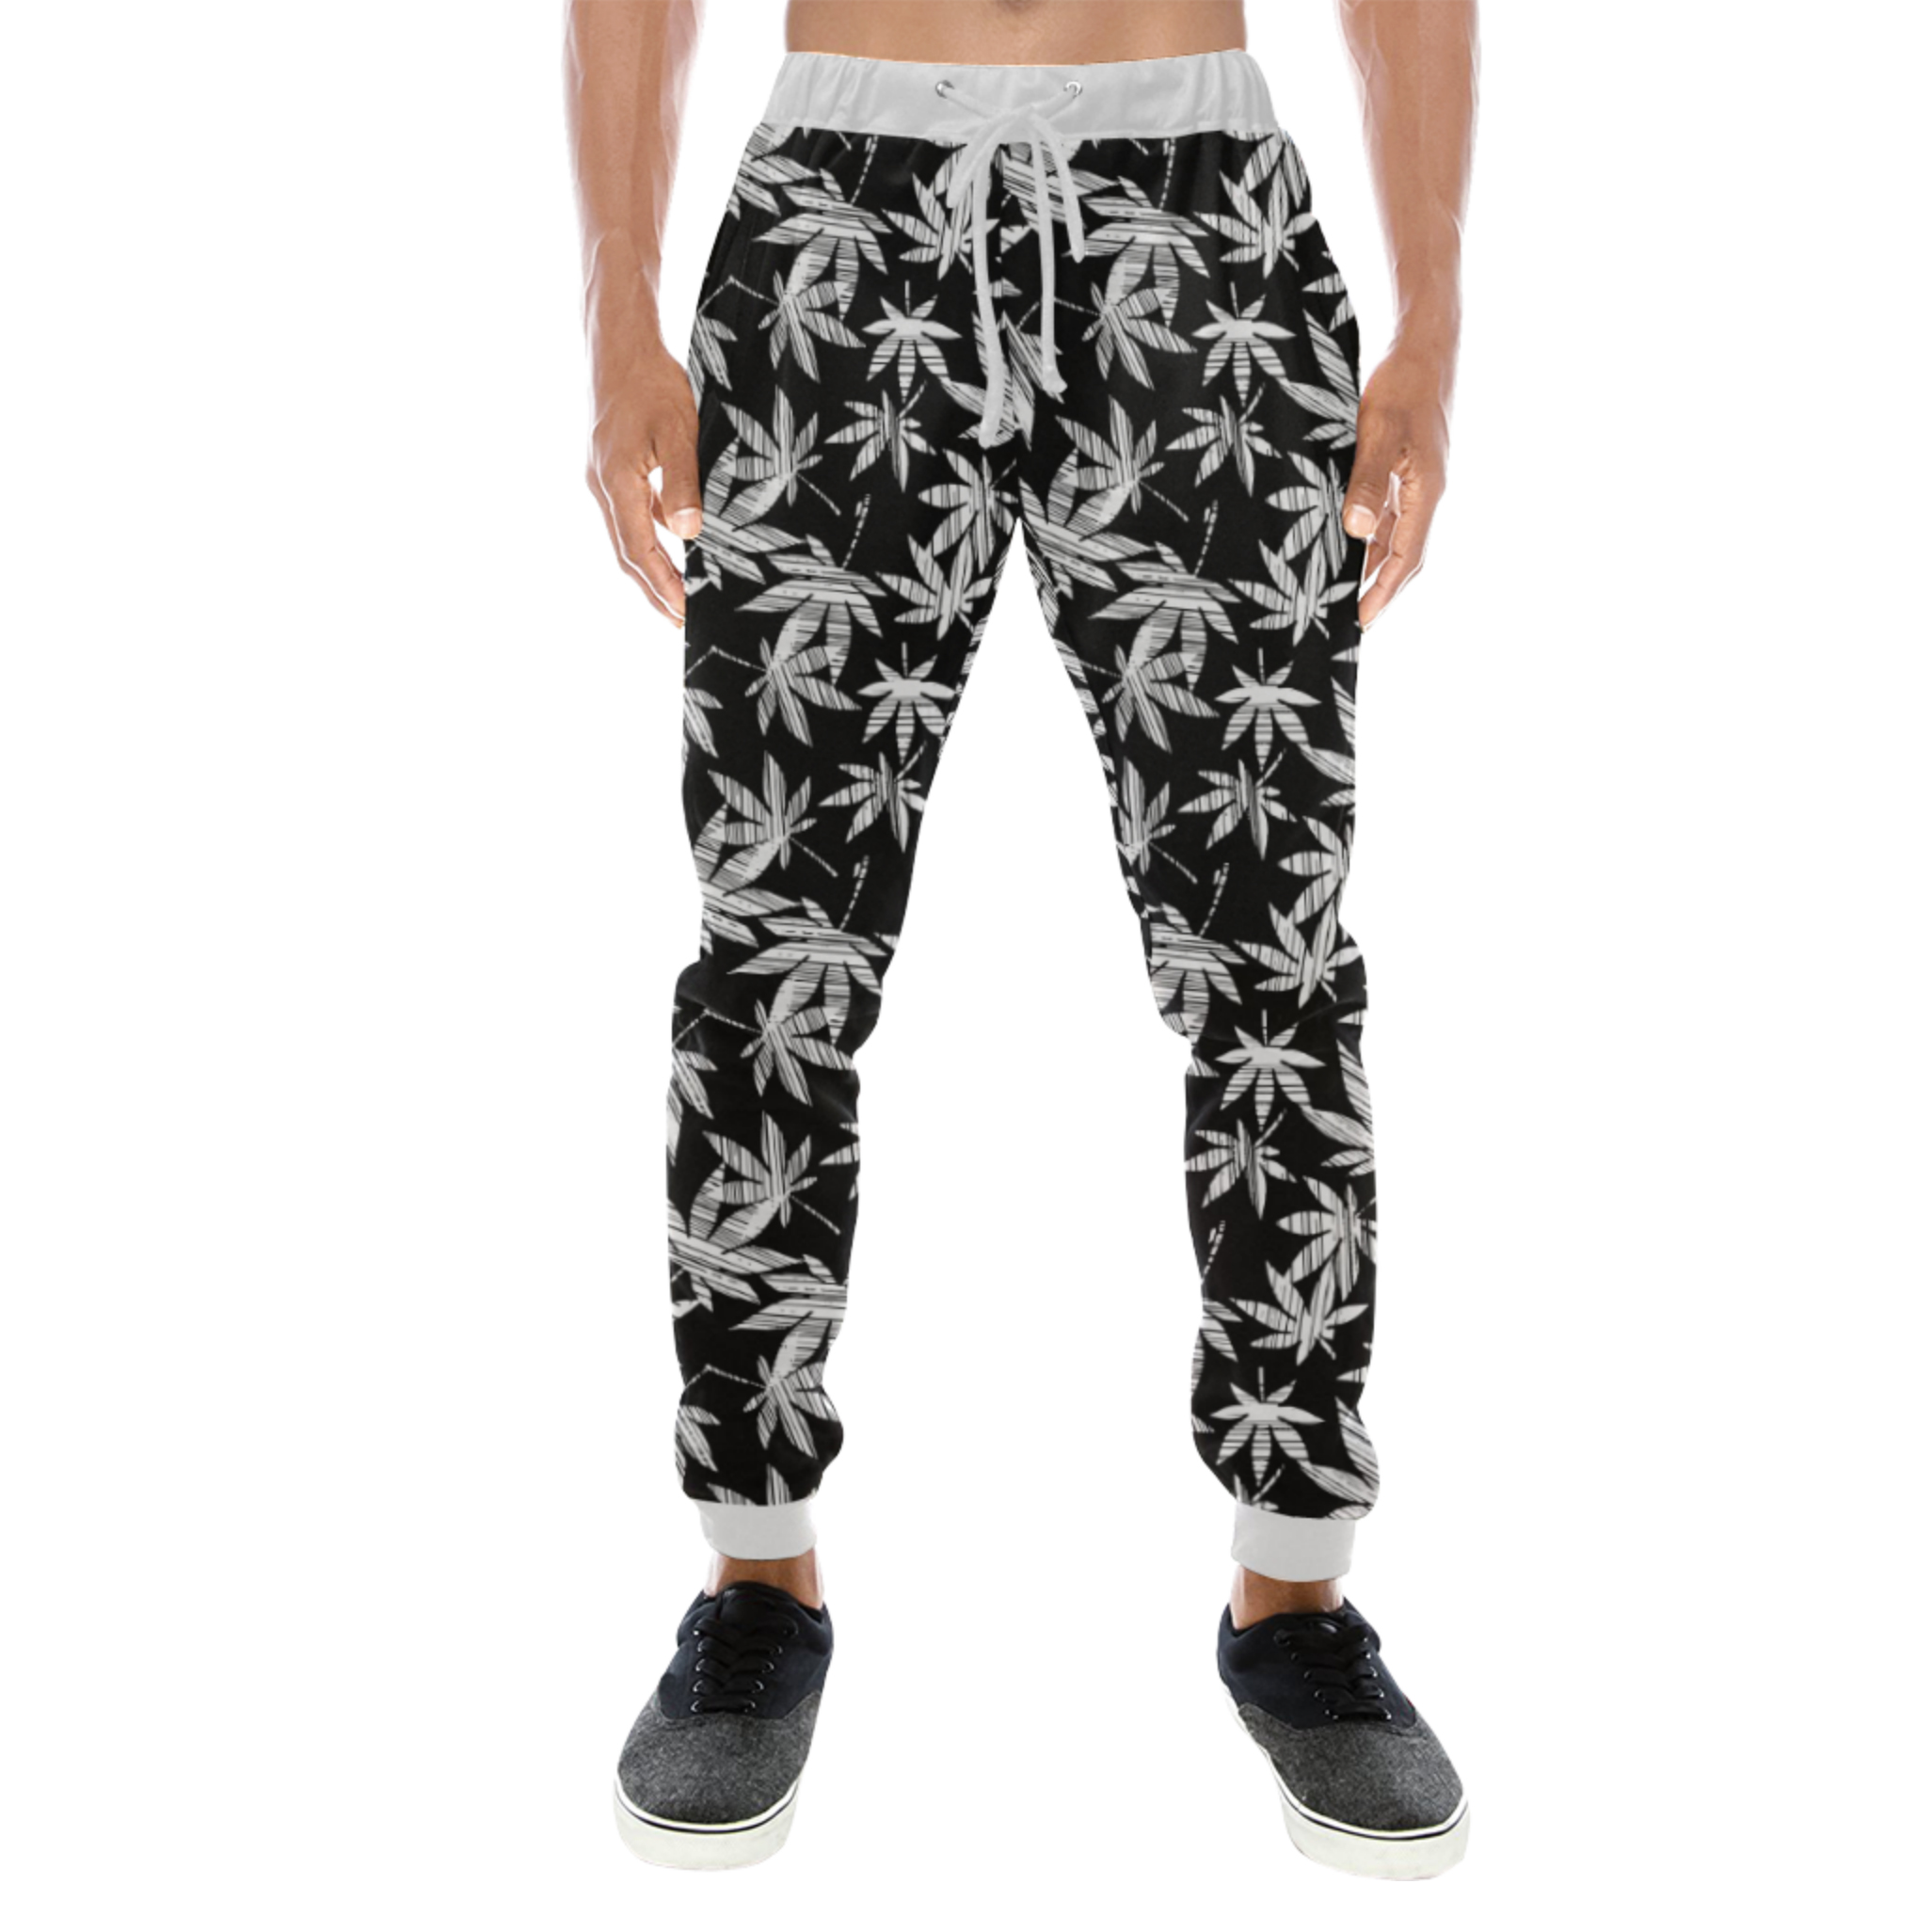 joggers_white waistband_just get high_hybrid_front